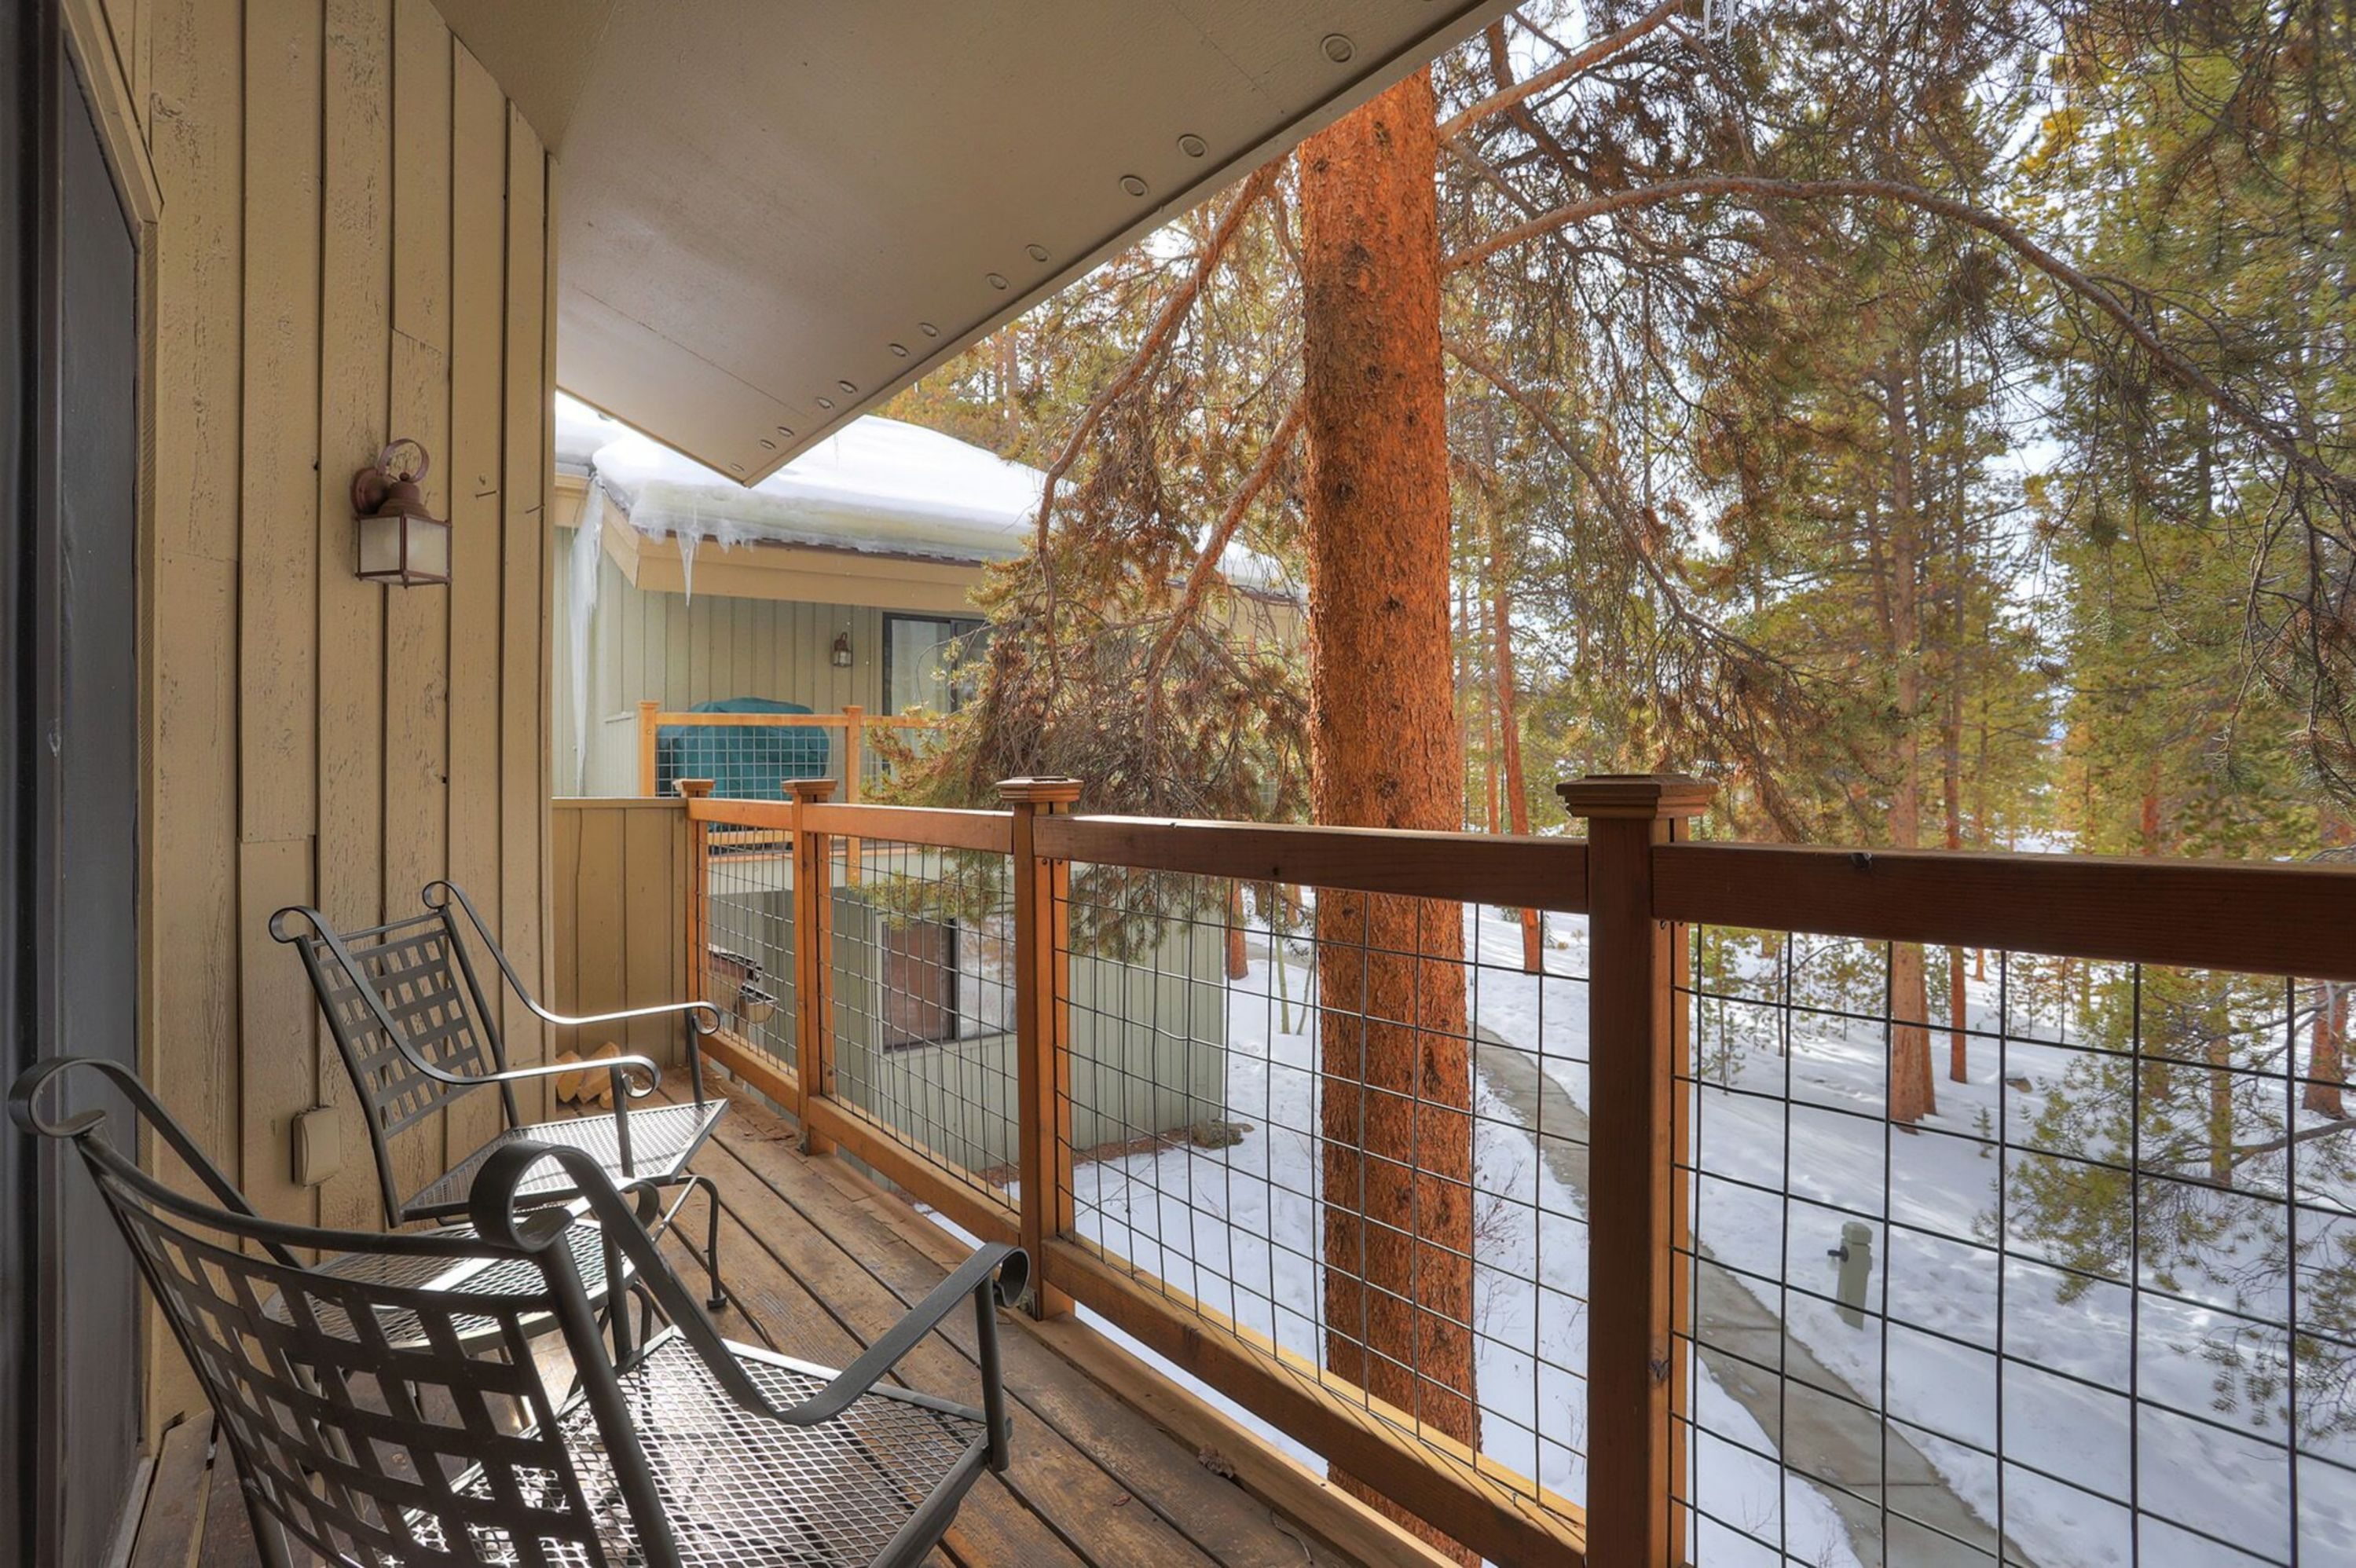 Porch with space for chilling and looking at nature